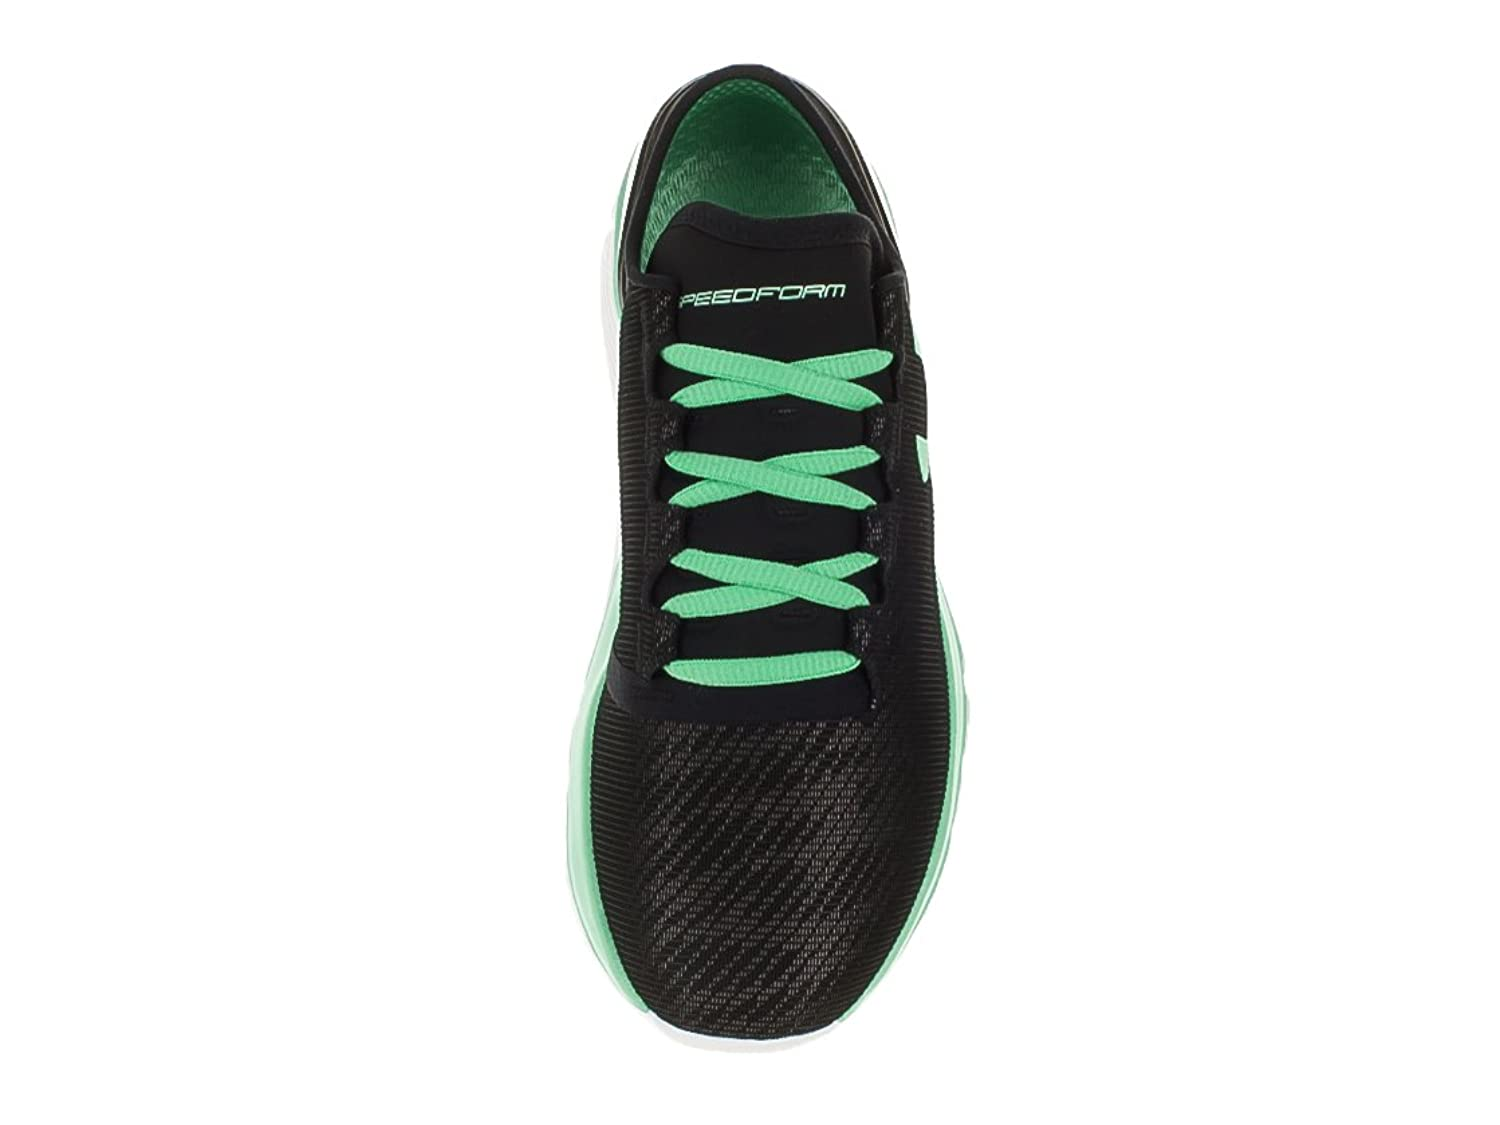 Under Armour Scarpe Da Basket Amazon India 5RfCsK4MP